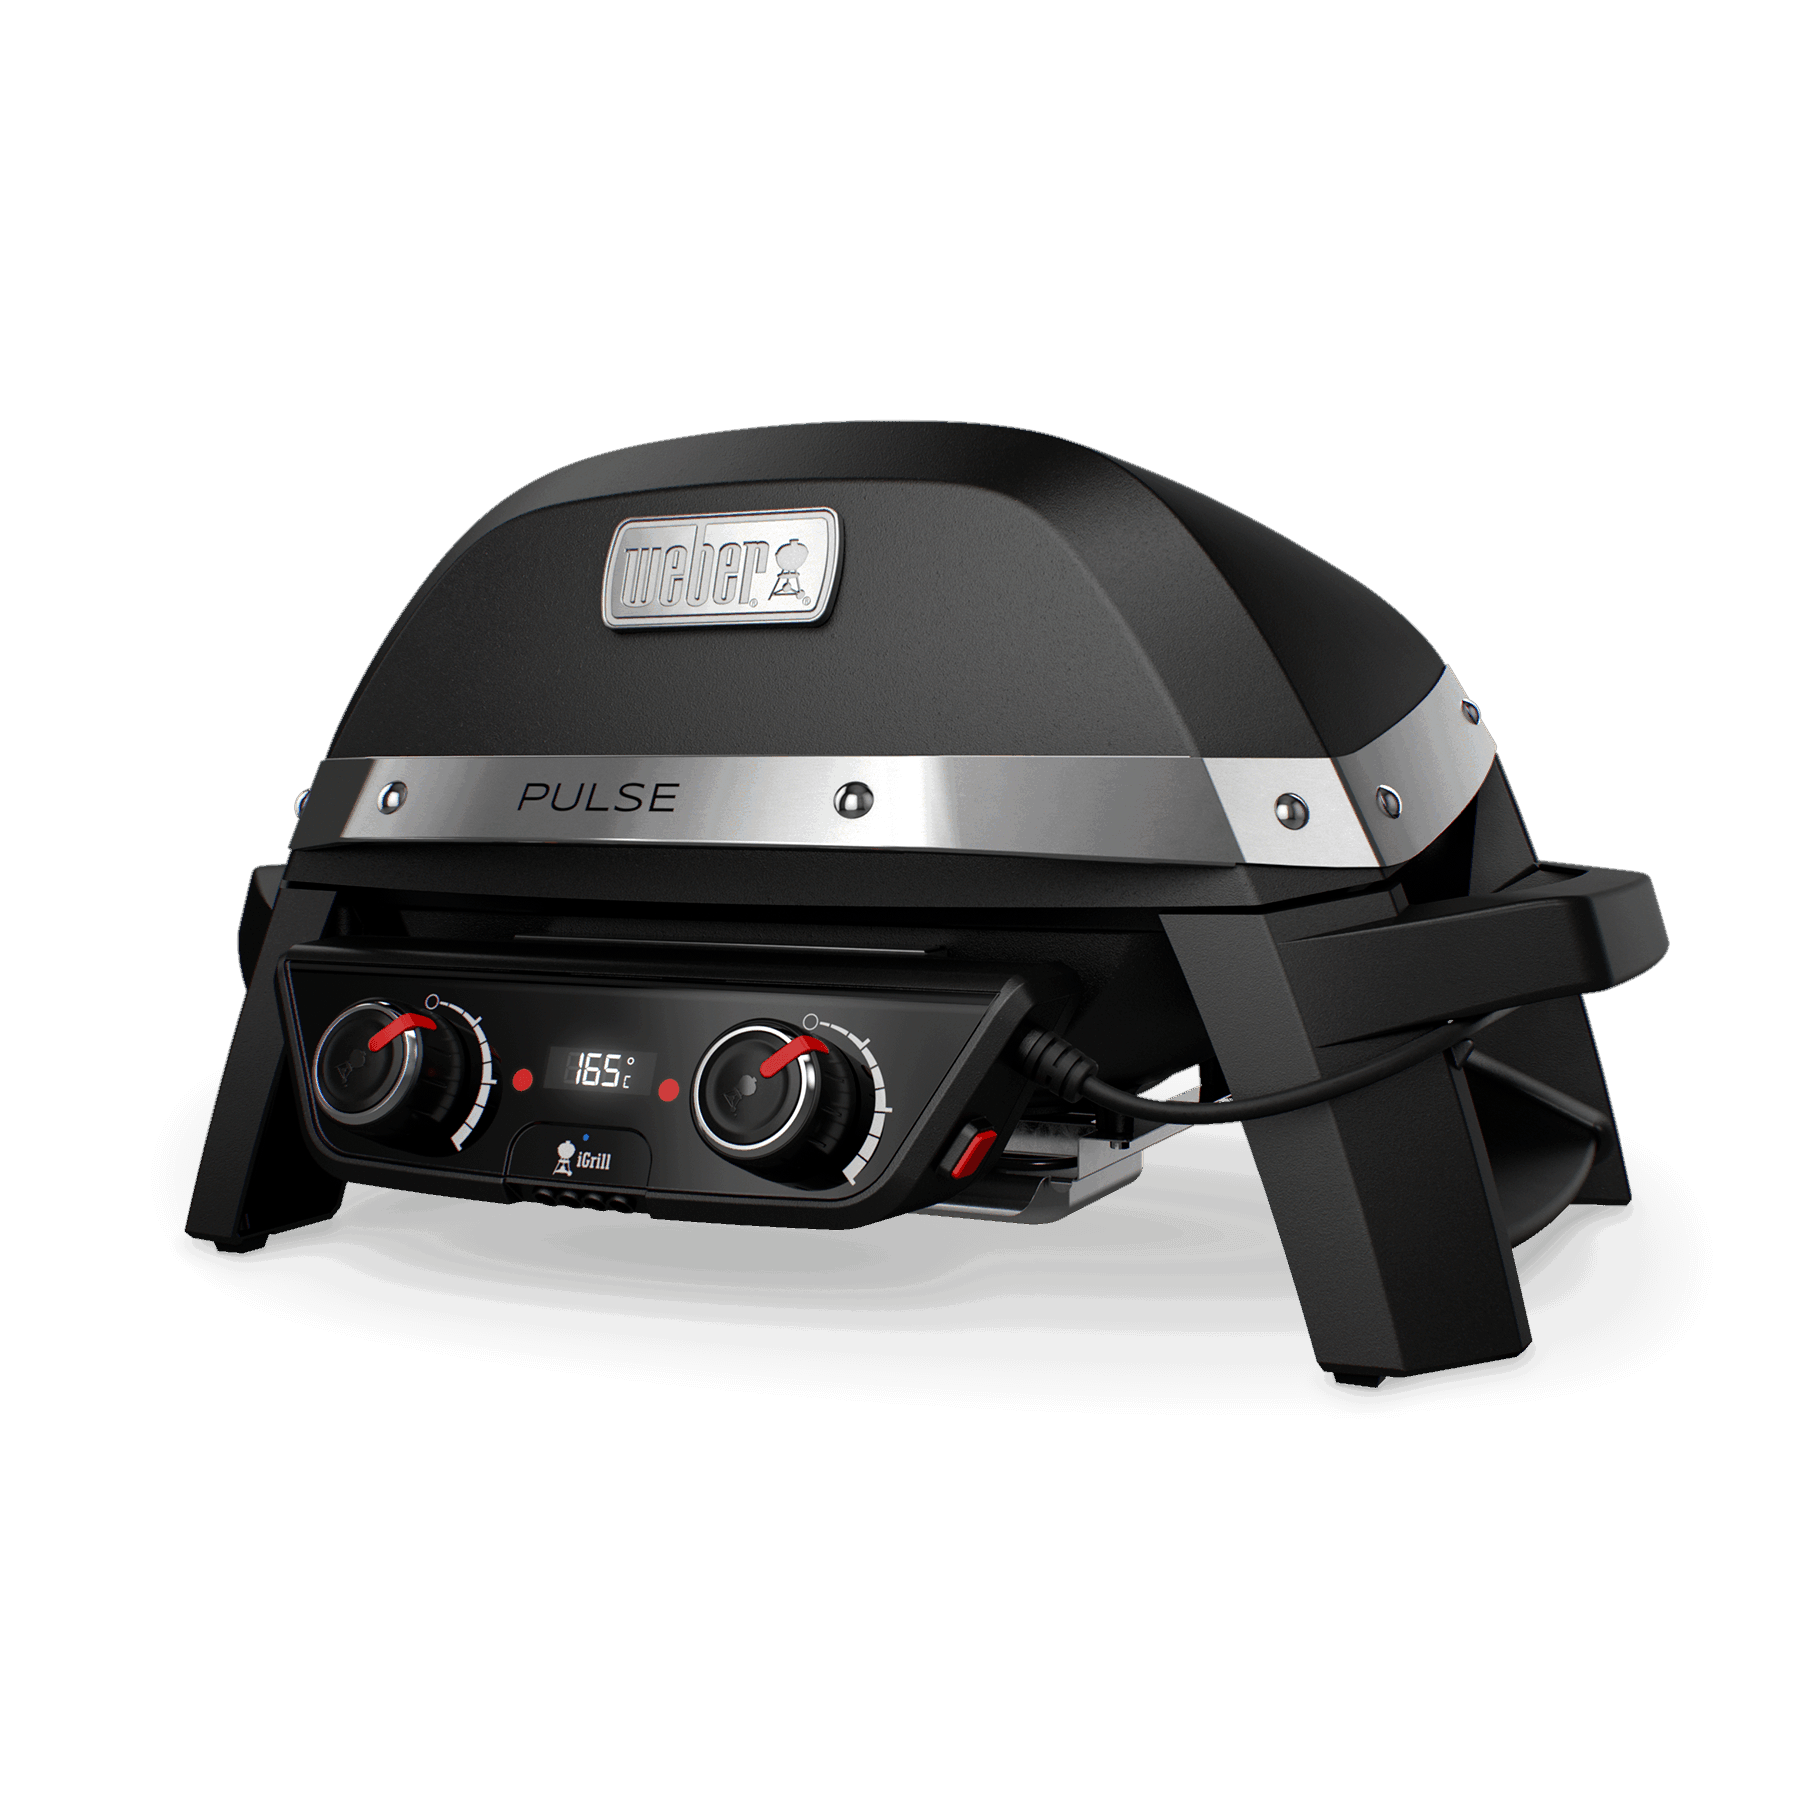 Pulse 2000 Elektrische barbecue